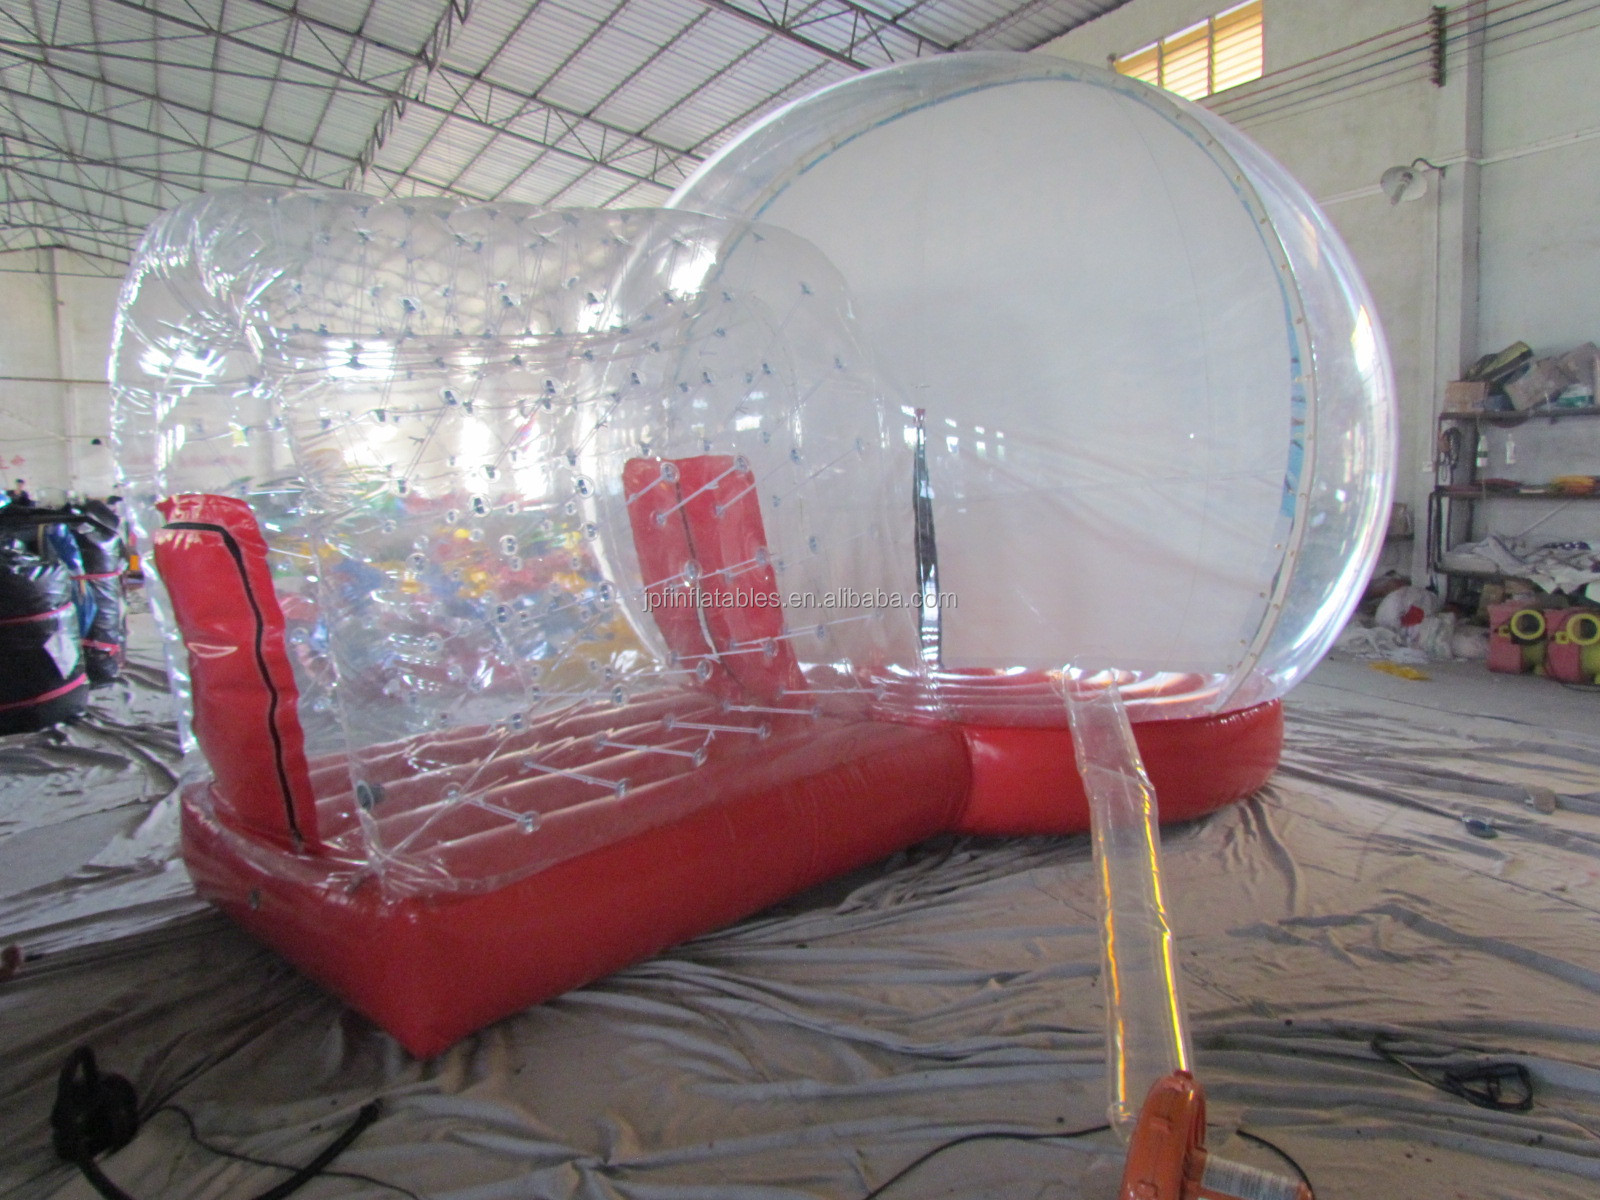 Amusement park party used snow globe inflatable bounce house/ inflatable jumping bouncy mushroom house for kids